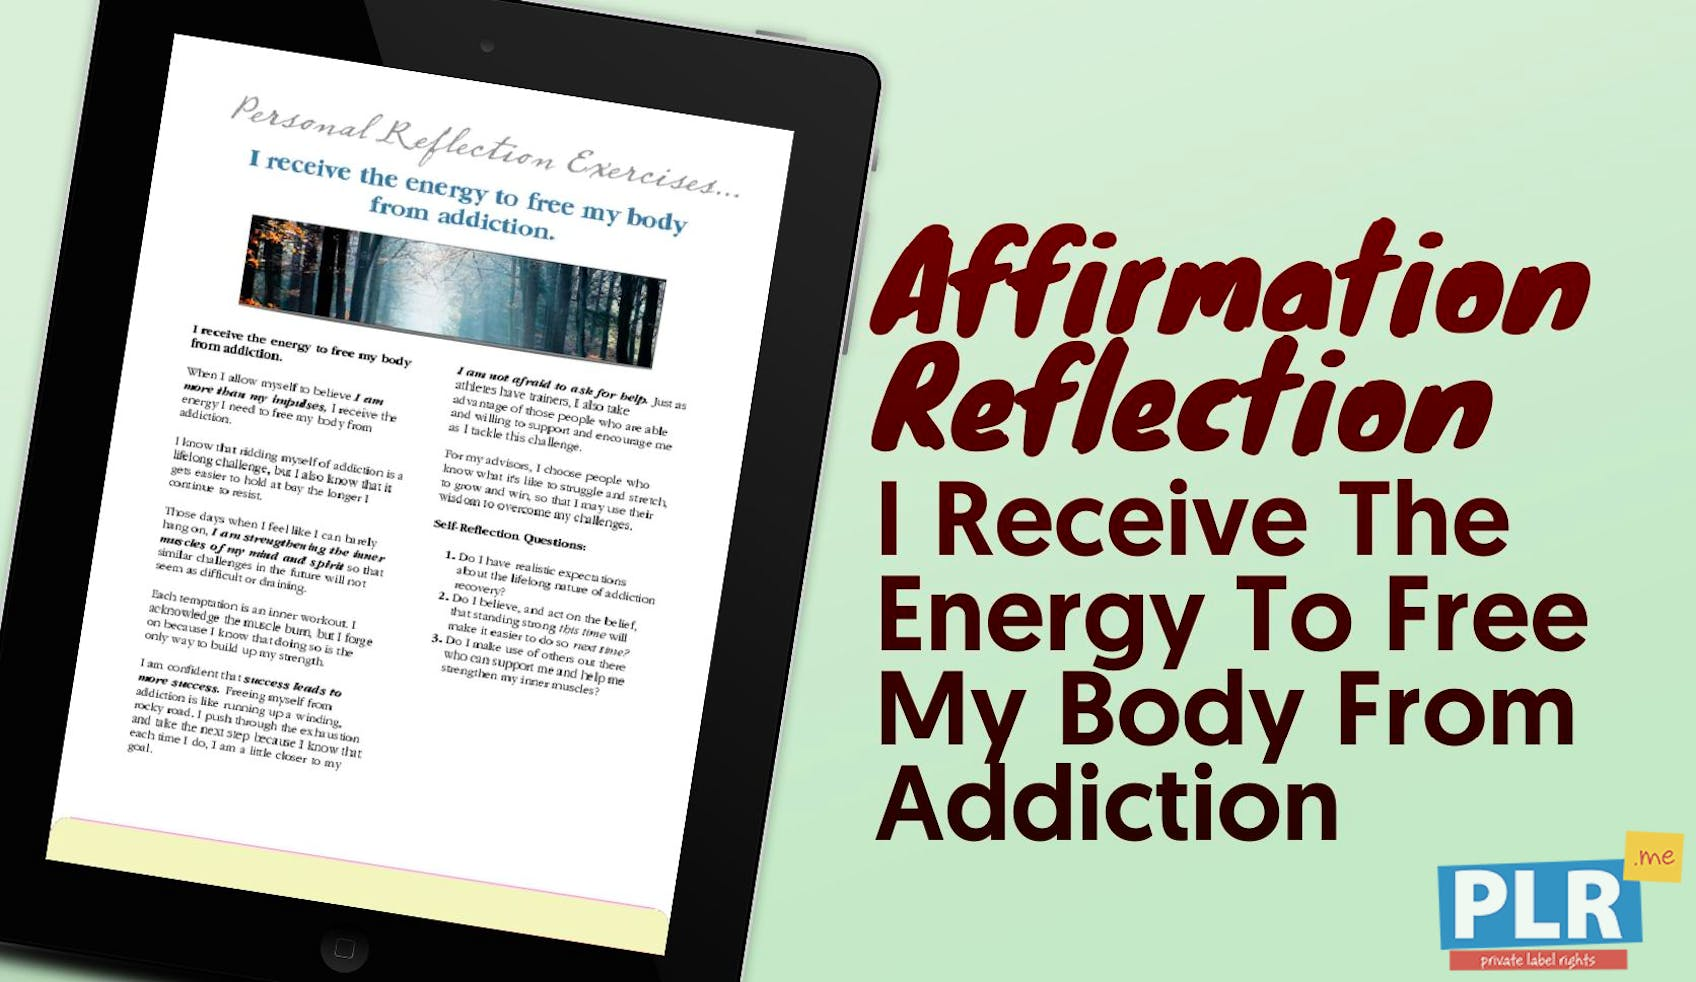 I Receive The Energy To Free My Body From Addiction